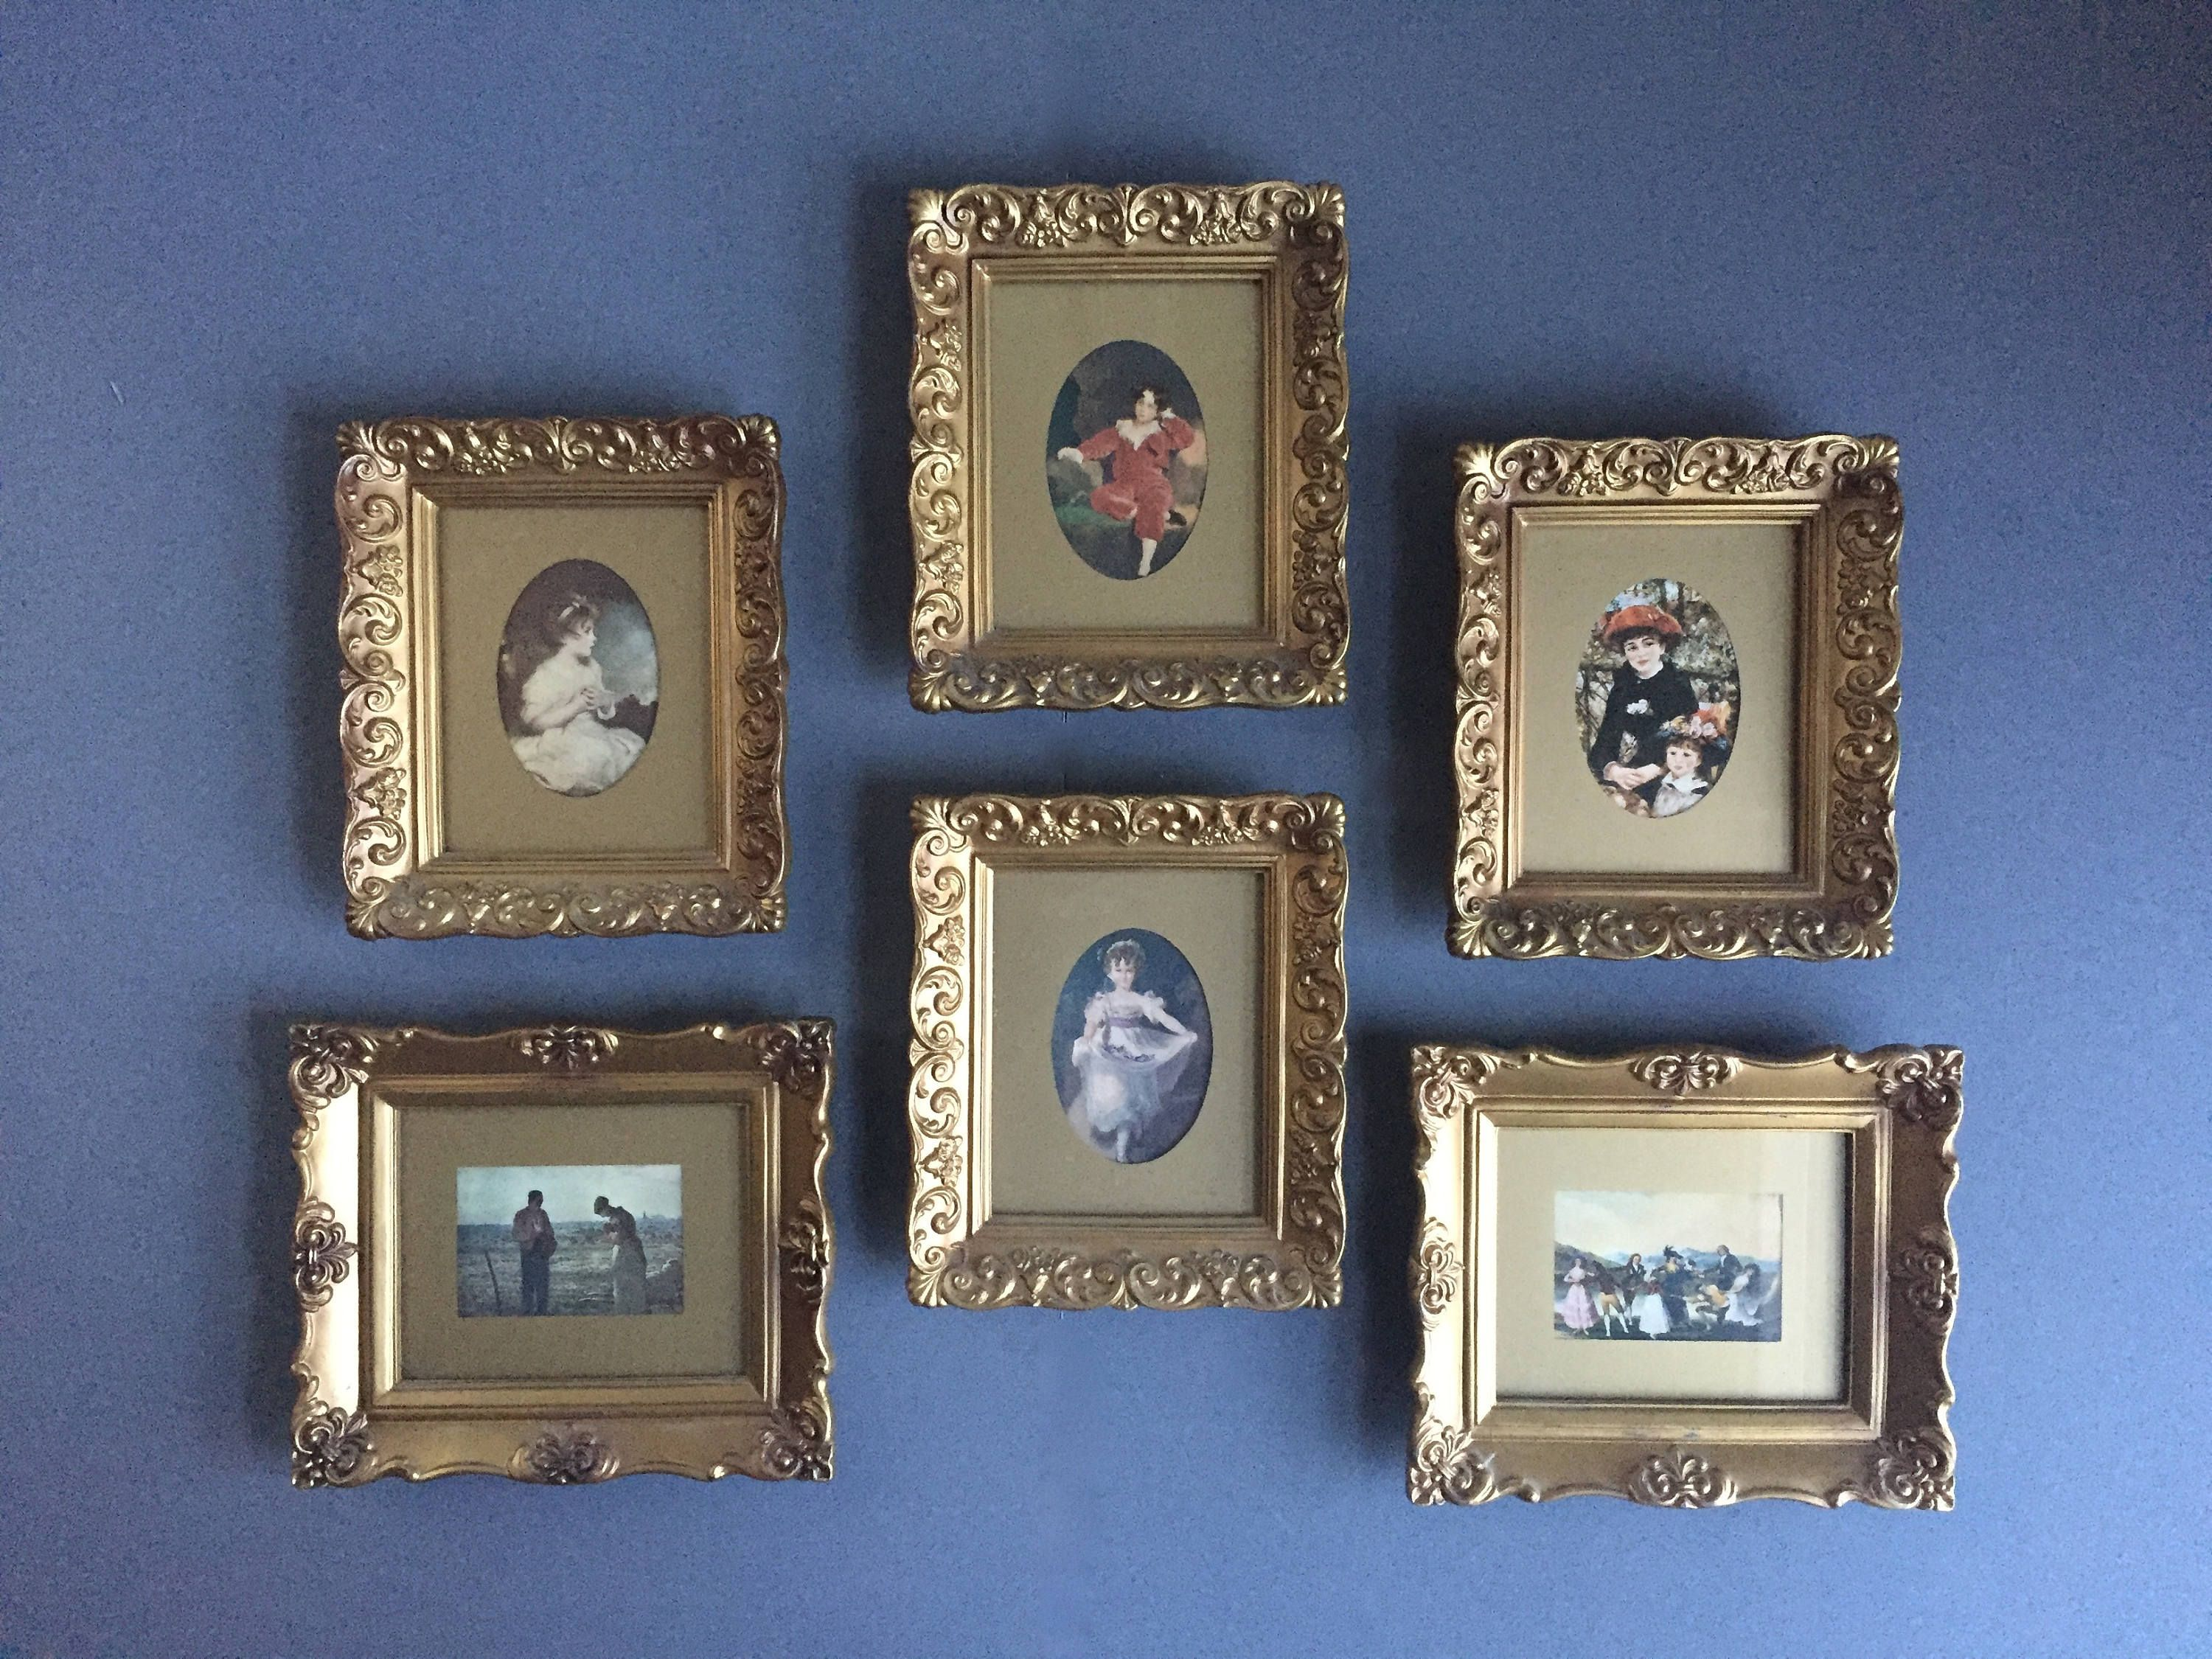 Small Framed Art Collection Mini Masterpieces Etsy Small Framed Art Framed Art Small Frame